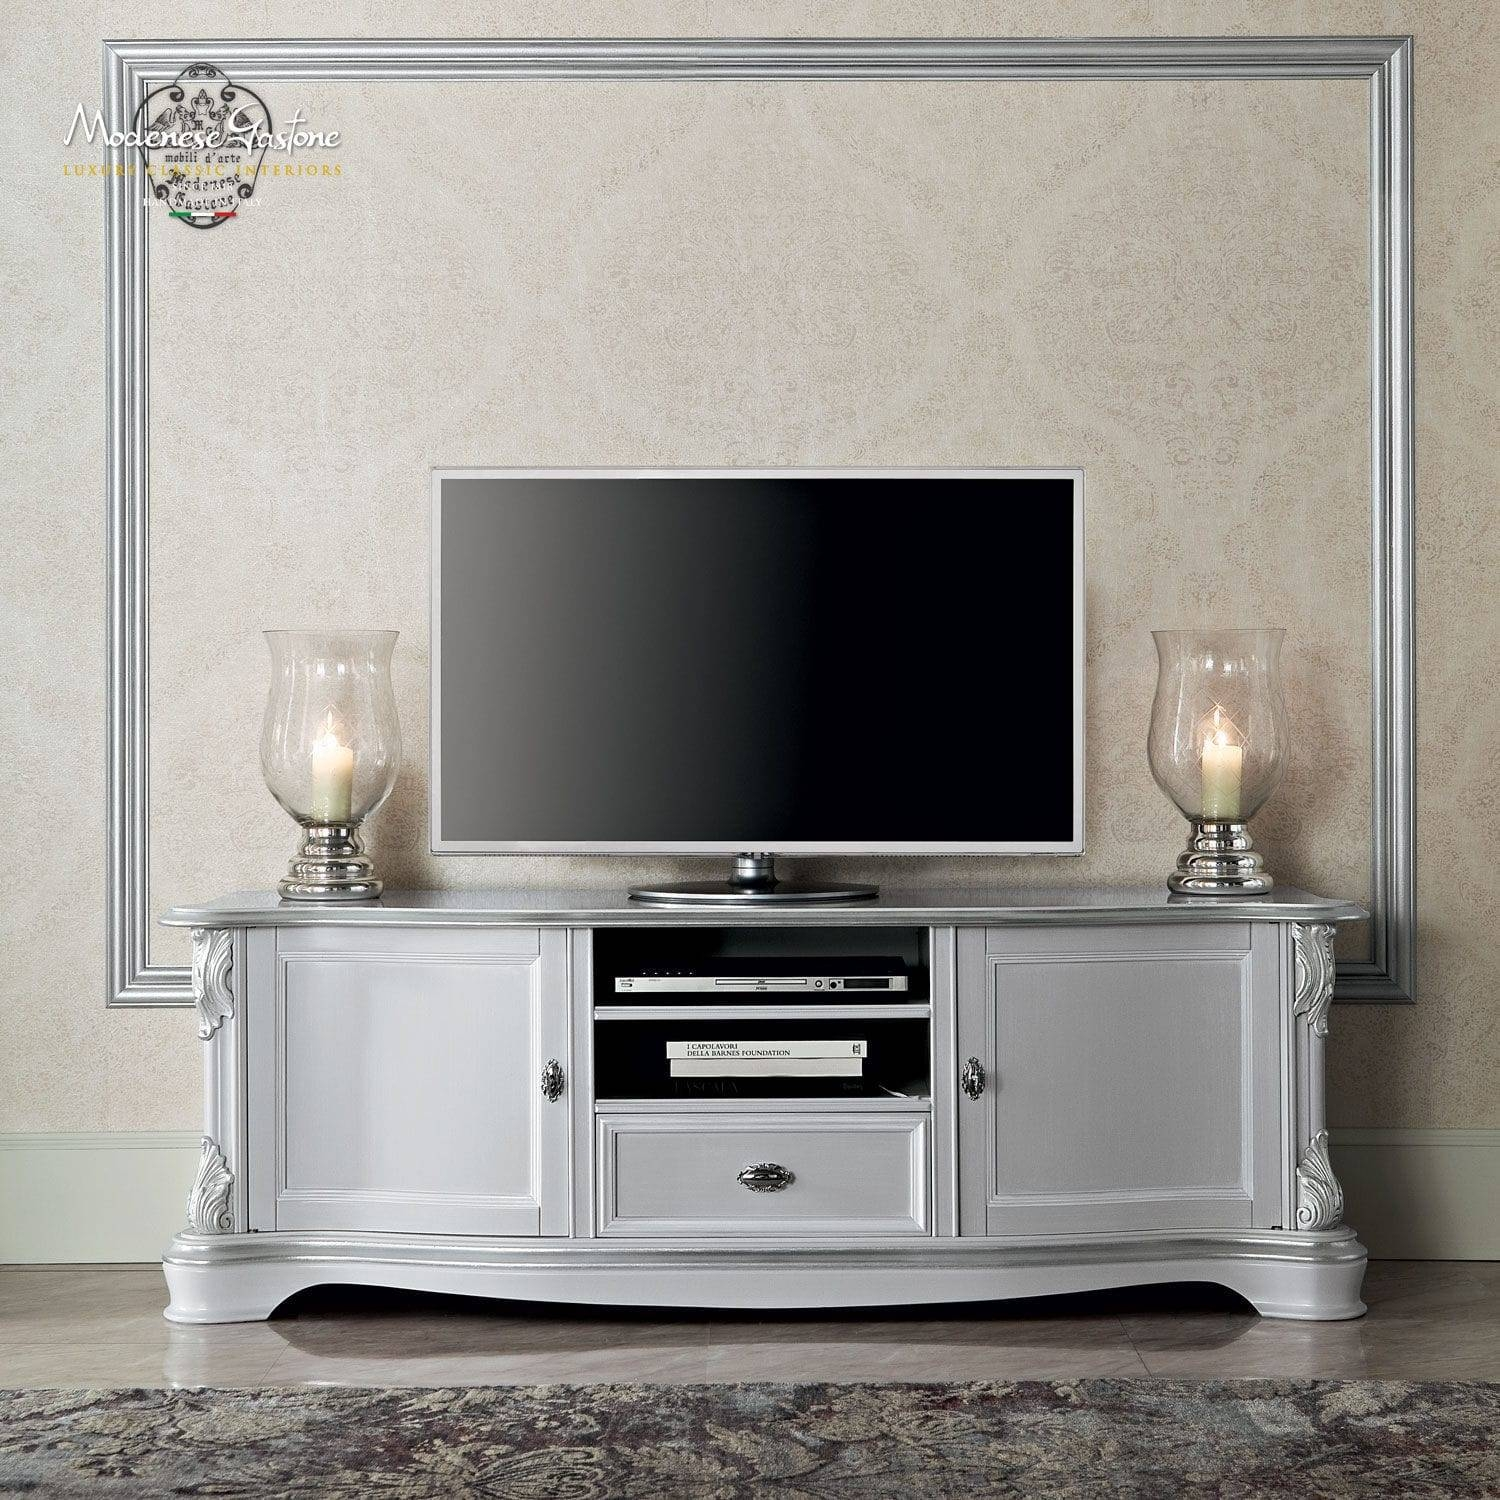 Classic Tv Cabinet / Solid Wood - Bella Vita - Modenese Gastone throughout Classic Tv Cabinets (Image 4 of 15)